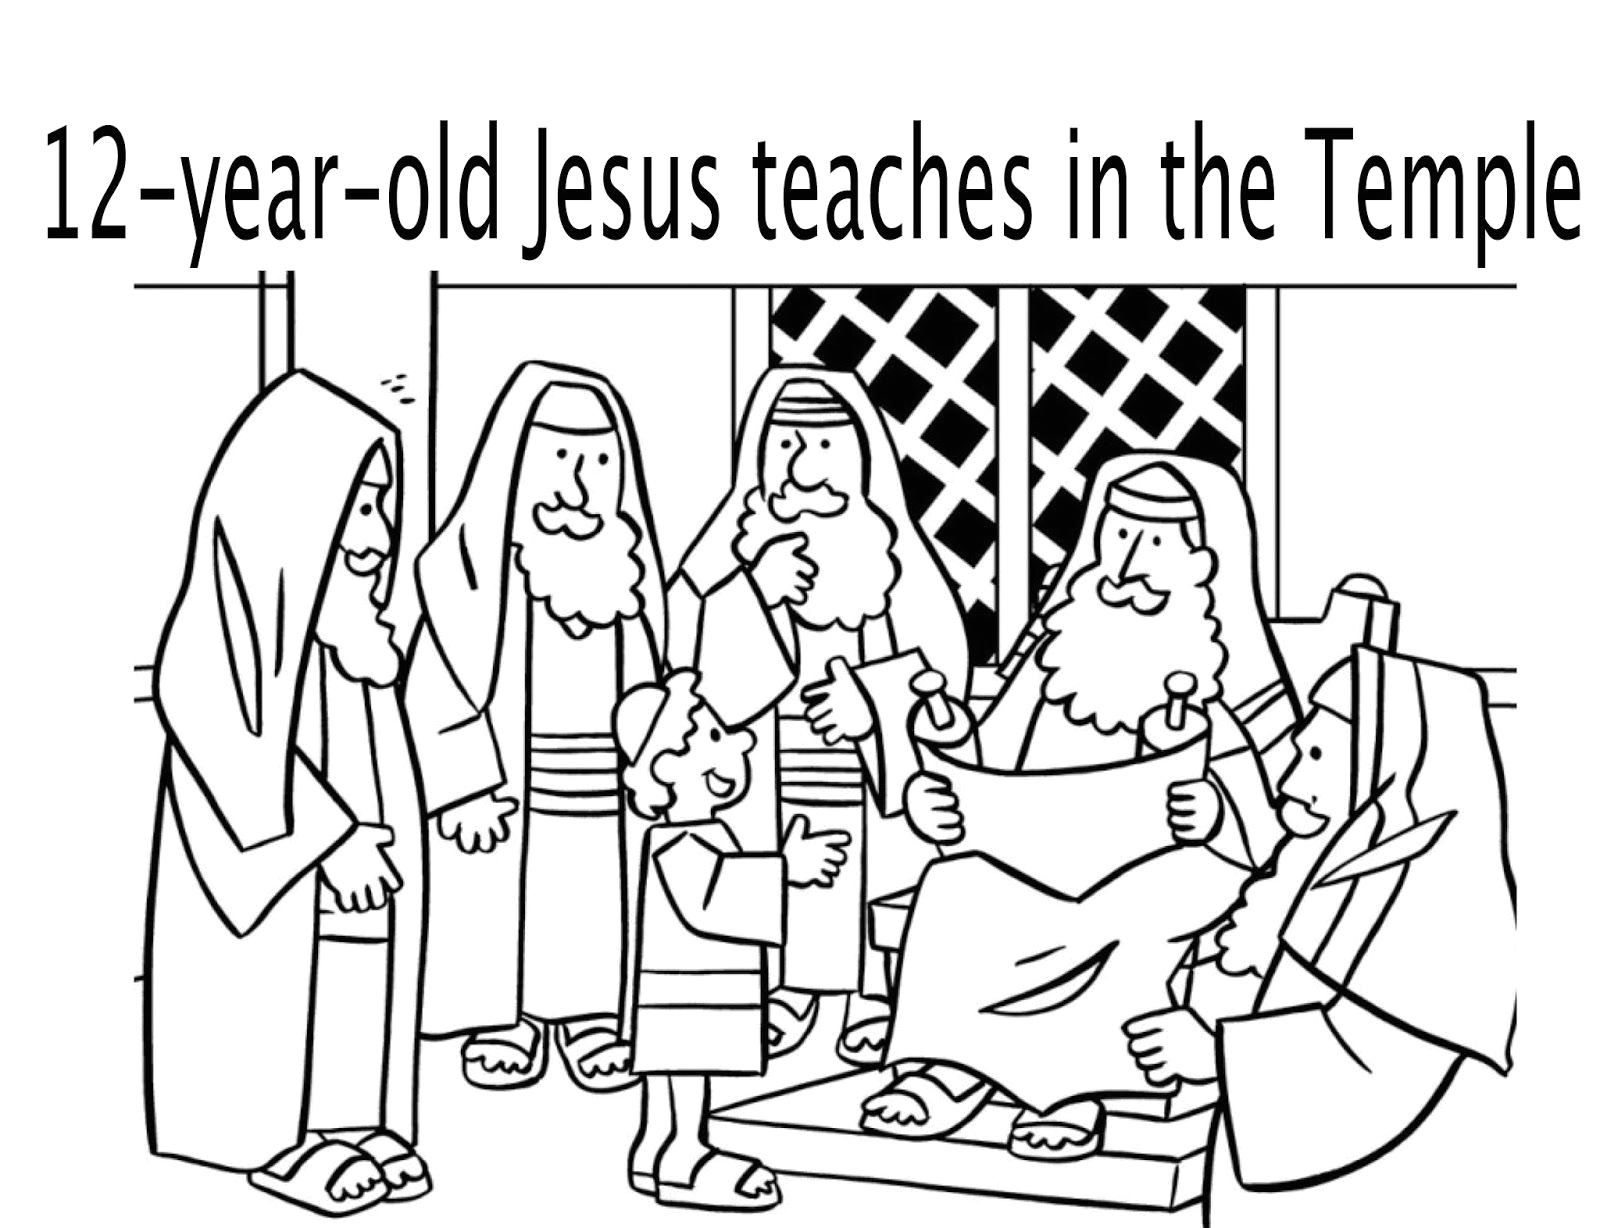 Coloring Page Of Jesus In the Temple Boy Jesus Teaching In the Temple 12 Years Old Coloring